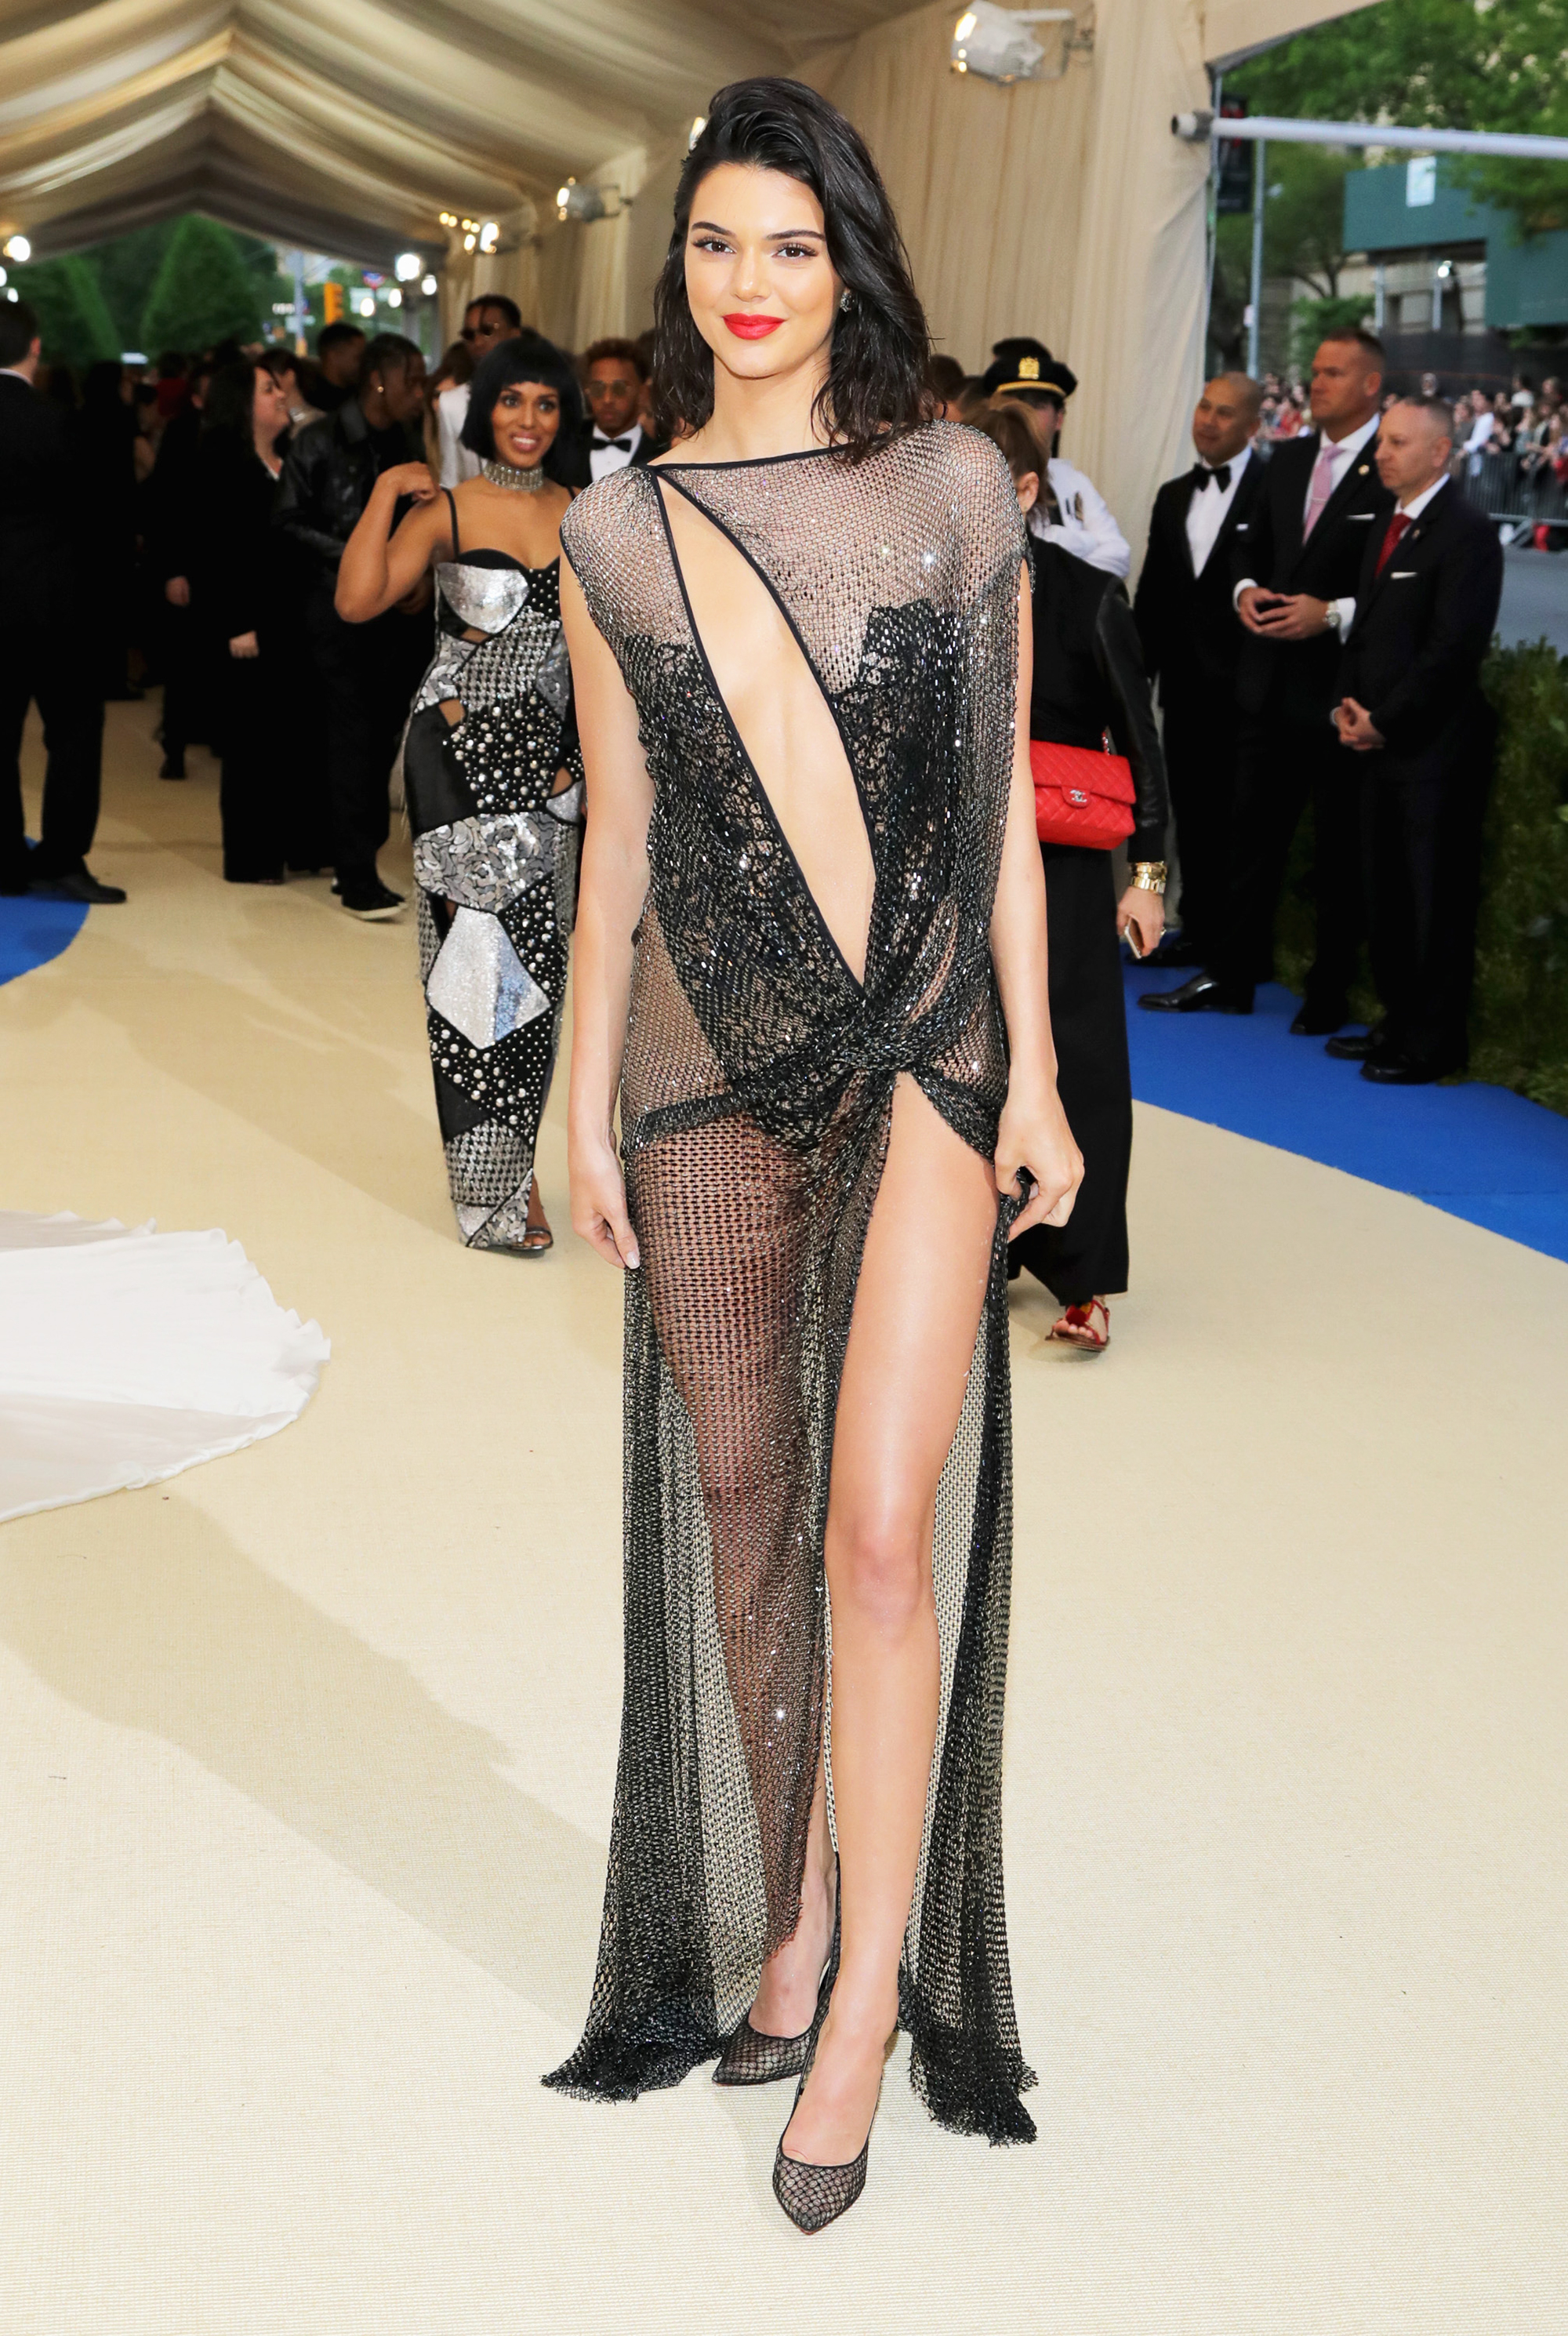 Kendall Jenner attends The Metropolitan Museum of Art's Costume Institute benefit gala celebrating the opening of the Rei Kawakubo/Comme des Garçons: Art of the In-Between exhibition in New York City, on May 1, 2017.